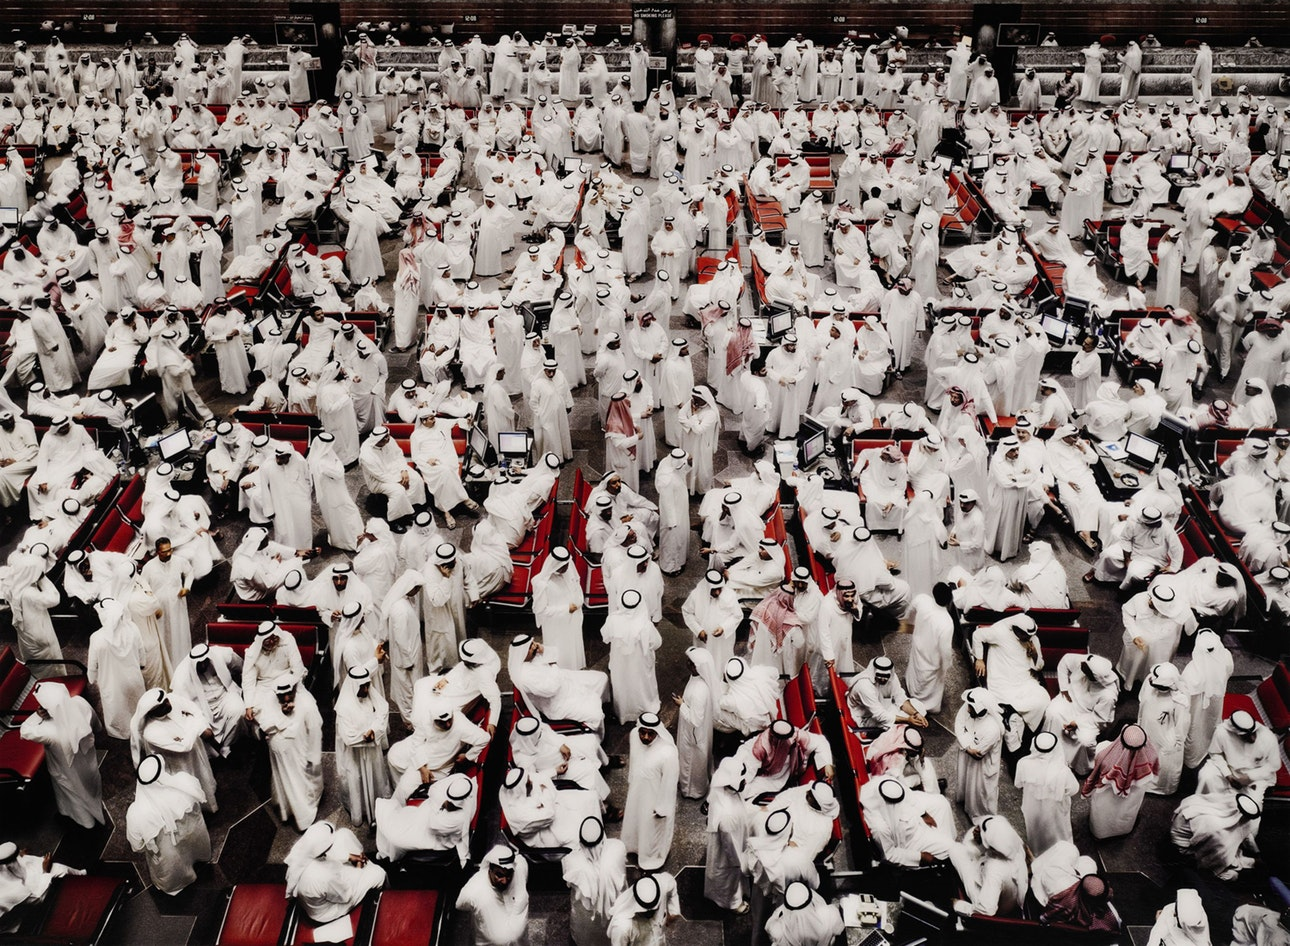 Andreas-Gursky-Kuwait-Stock-Exchange-II-2007